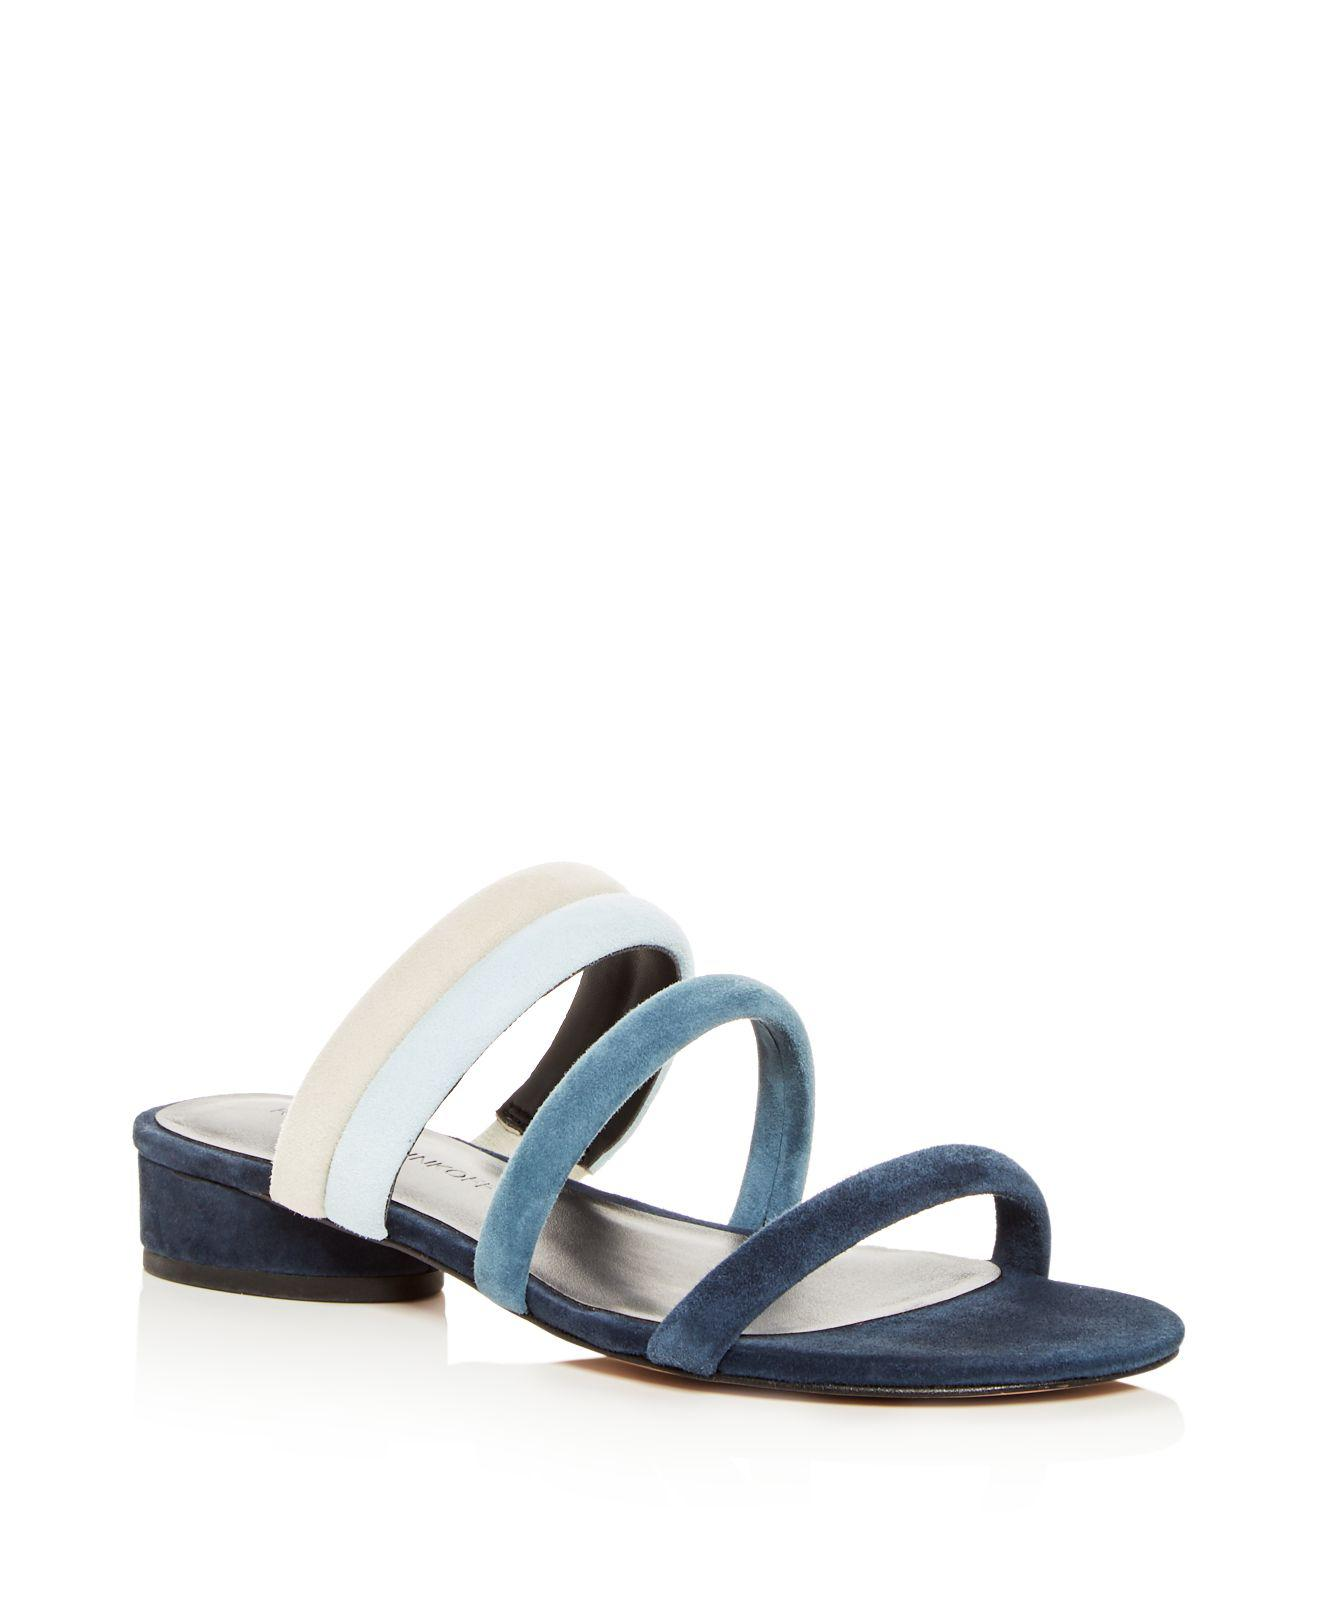 clearance wide range of Rebecca Minkoff Suede Slide Sandals best prices cheap price cheap find great cheapest price sale online sale cheapest price avt7girew